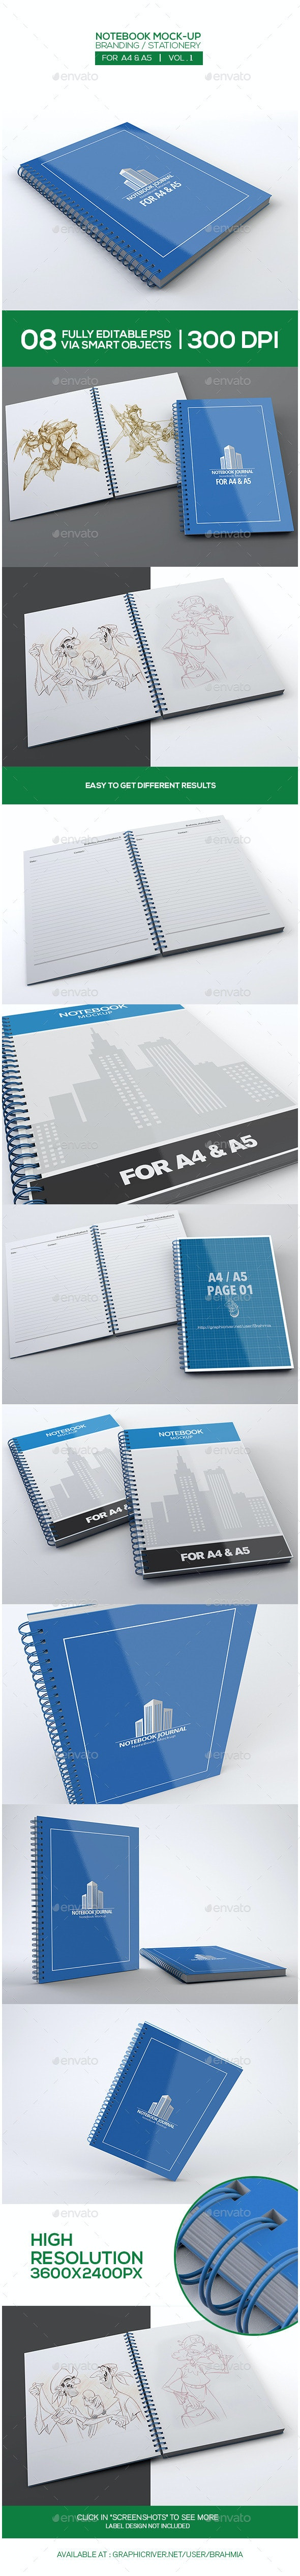 Notebook Mock-Up For A4/A5 - Miscellaneous Print